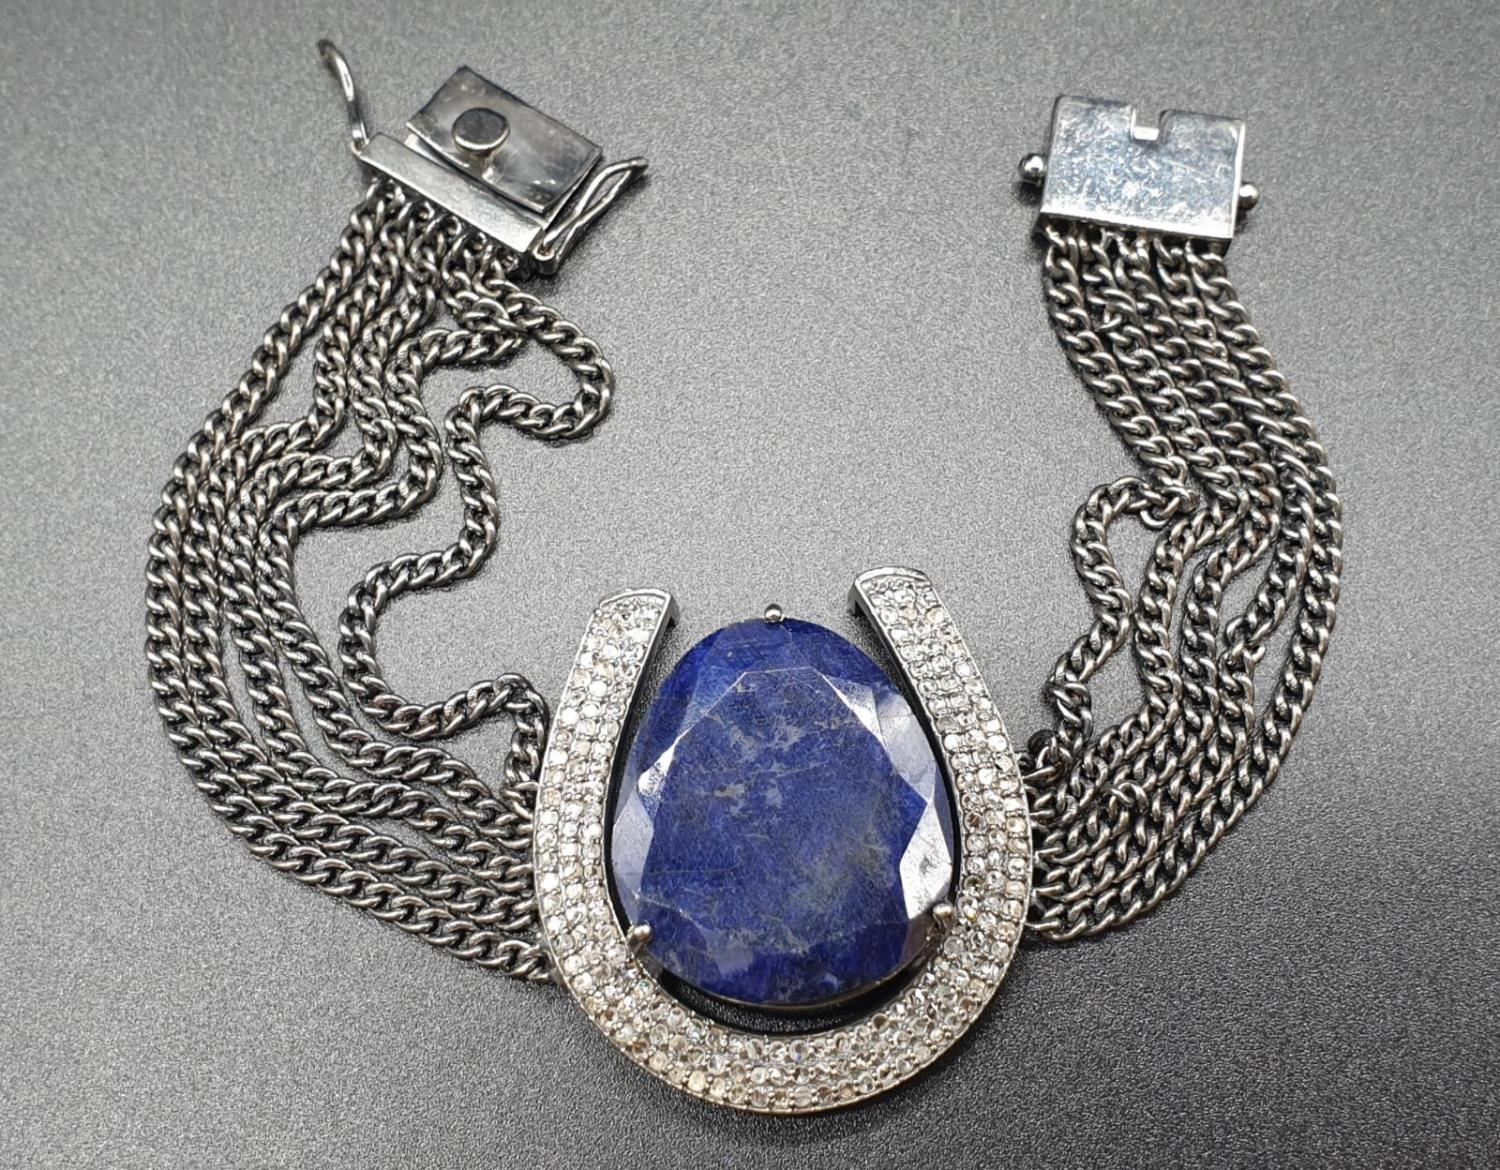 32.10 Cts Blue Sapphire inset a Horse shoe shaped bracelet. With 1.70 Cts Rose cut diamonds.